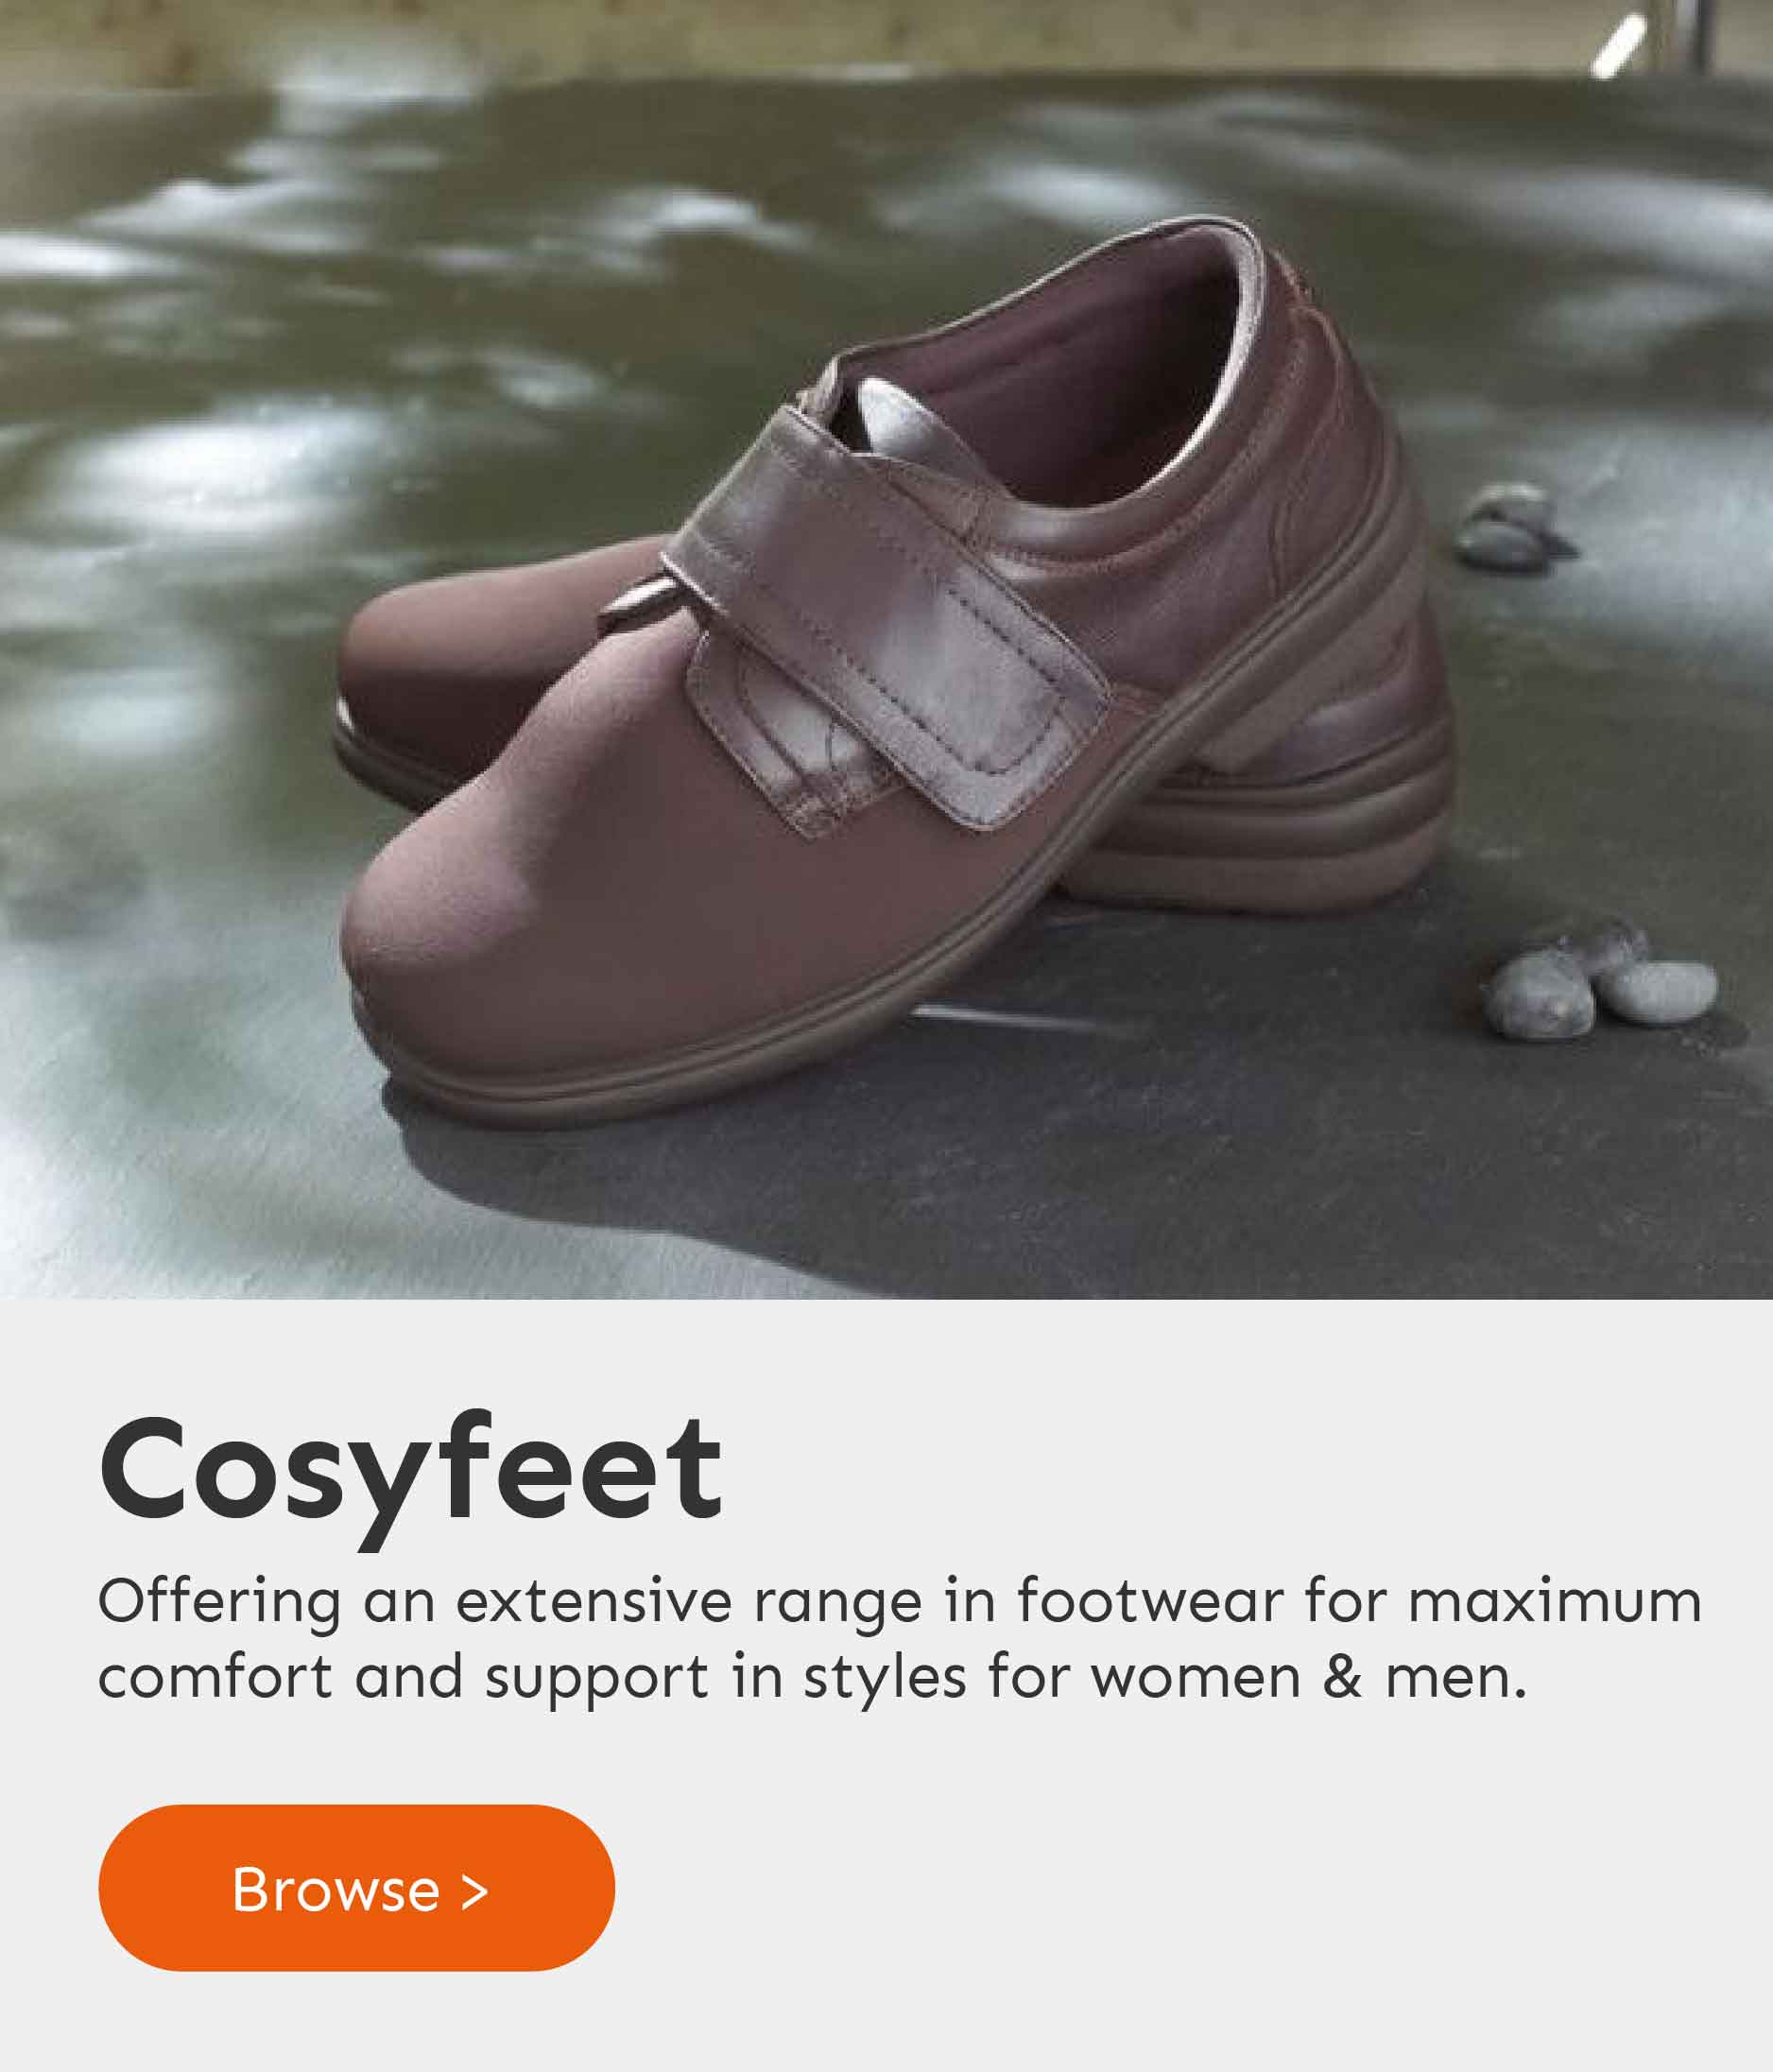 Cosyfeet shoes & slippers